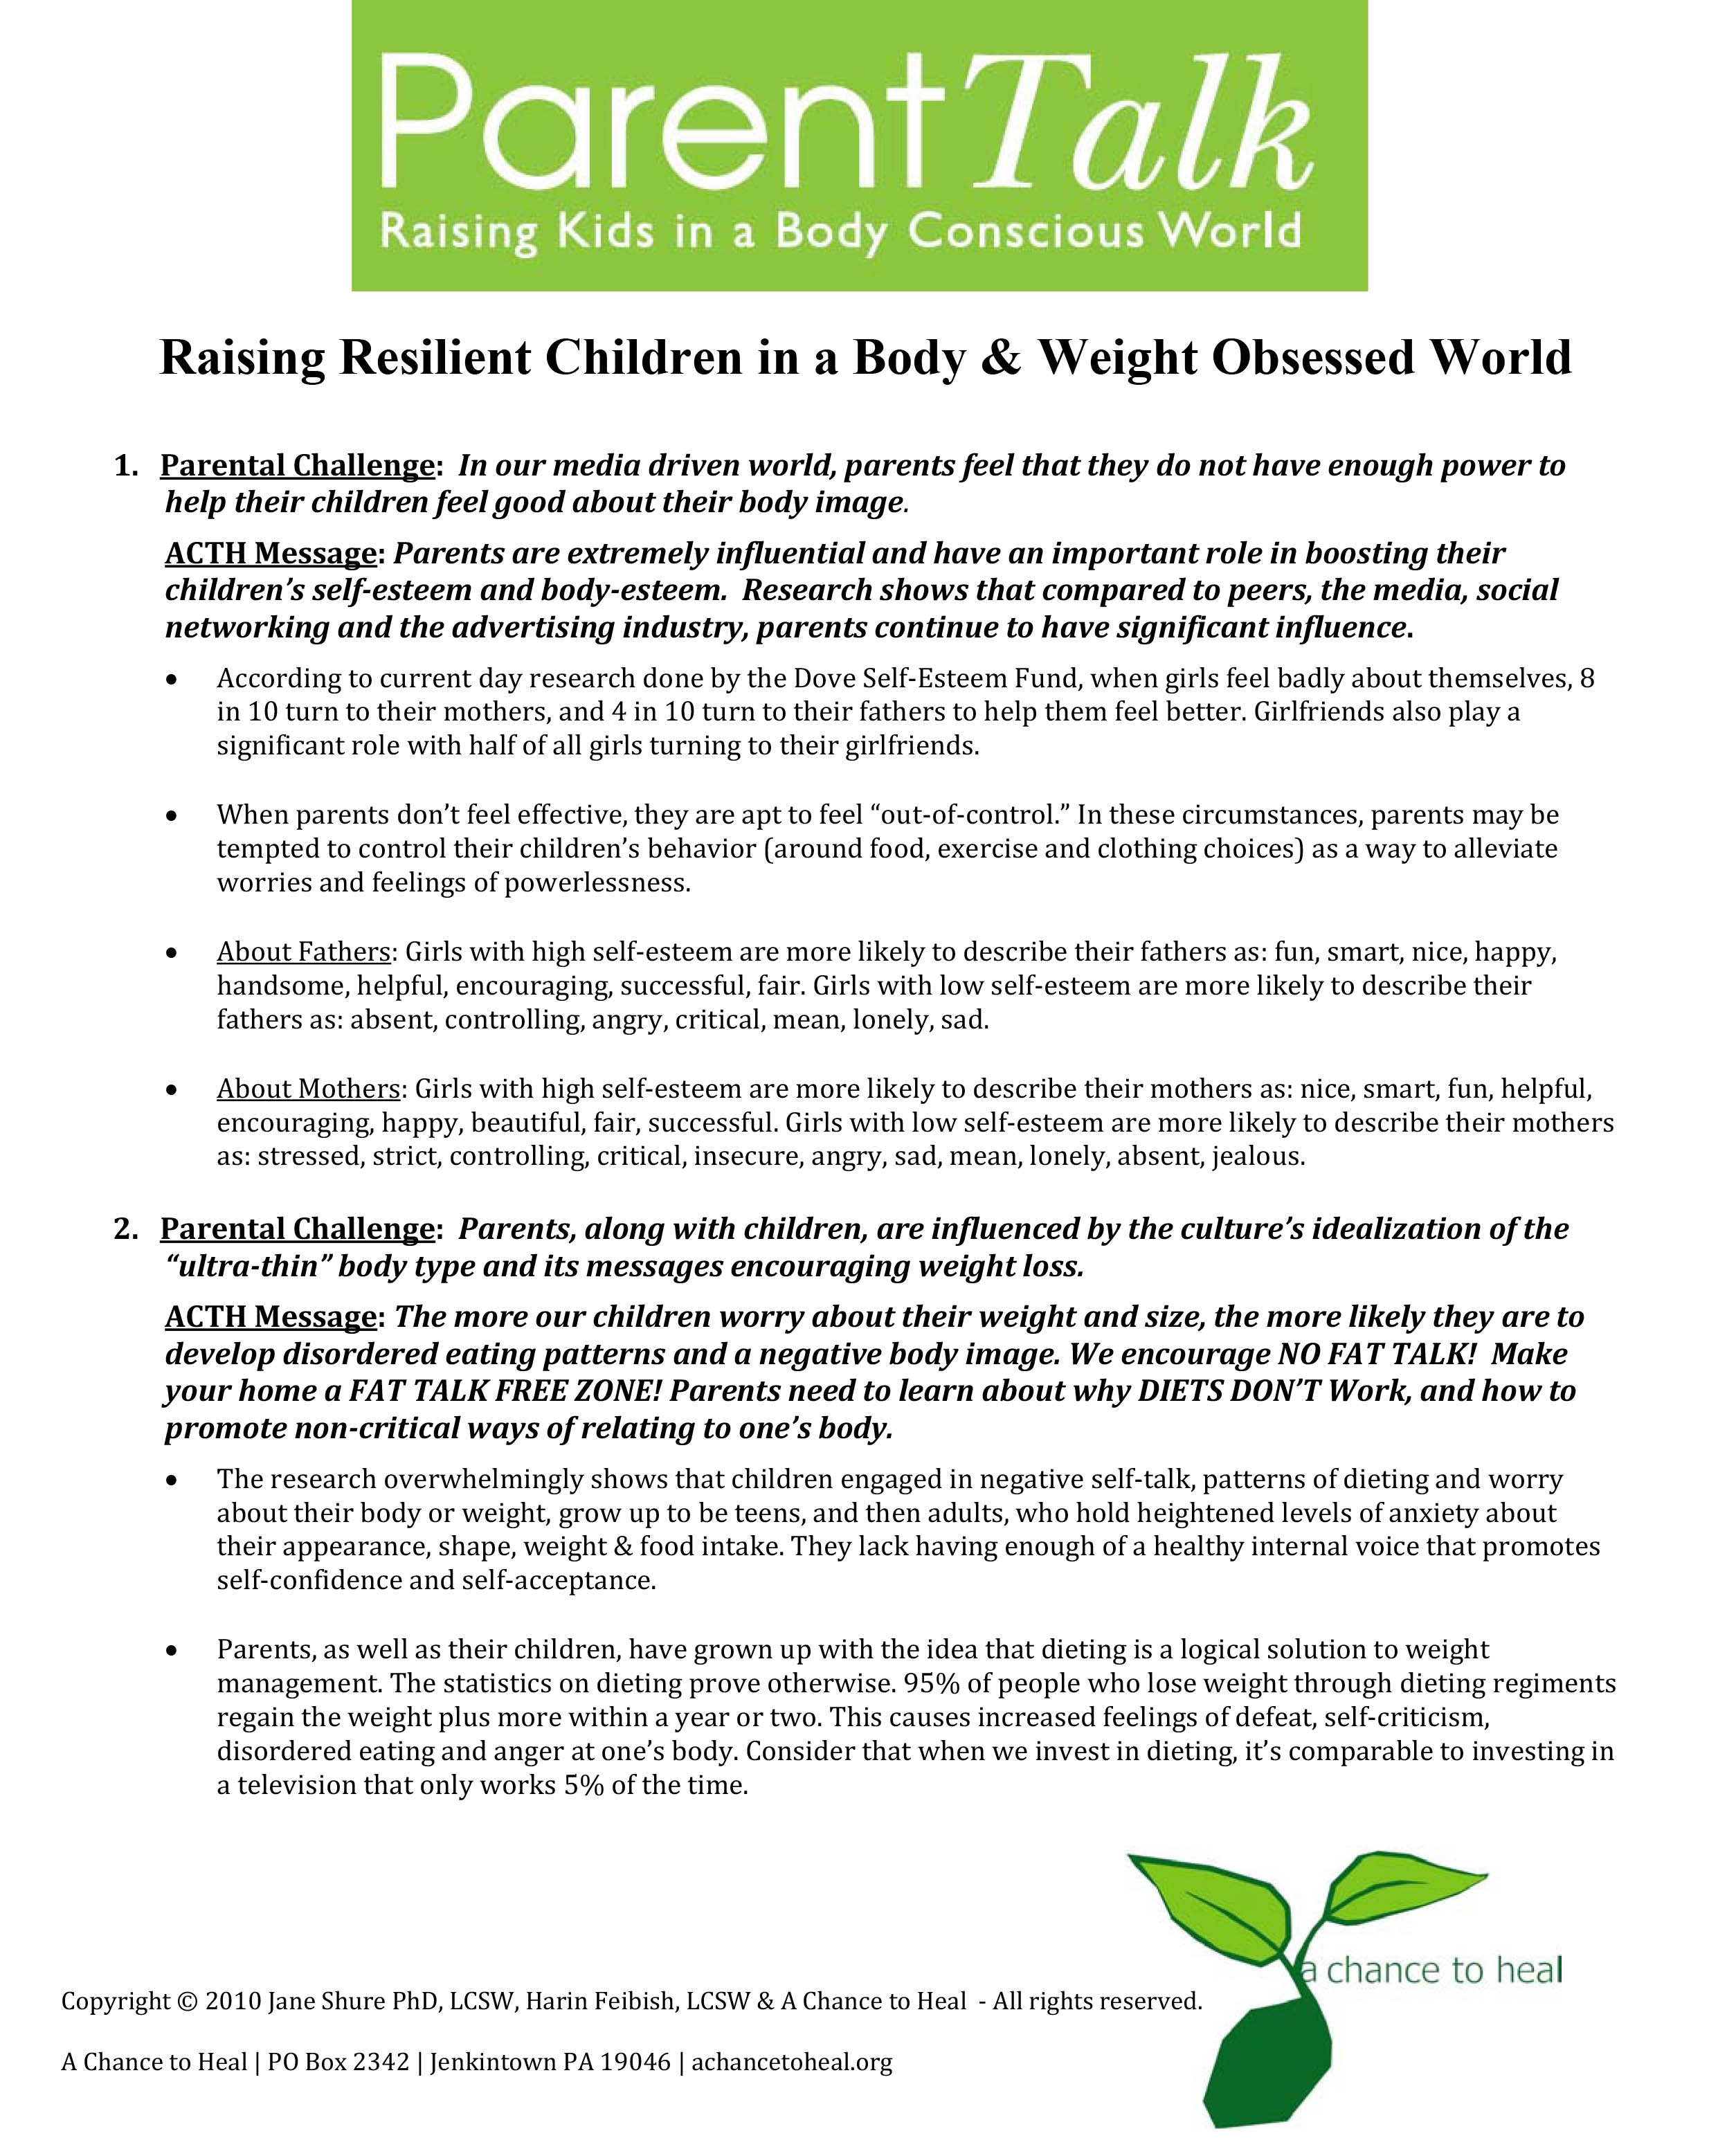 Parents have a key role in preventing eating disorders starting